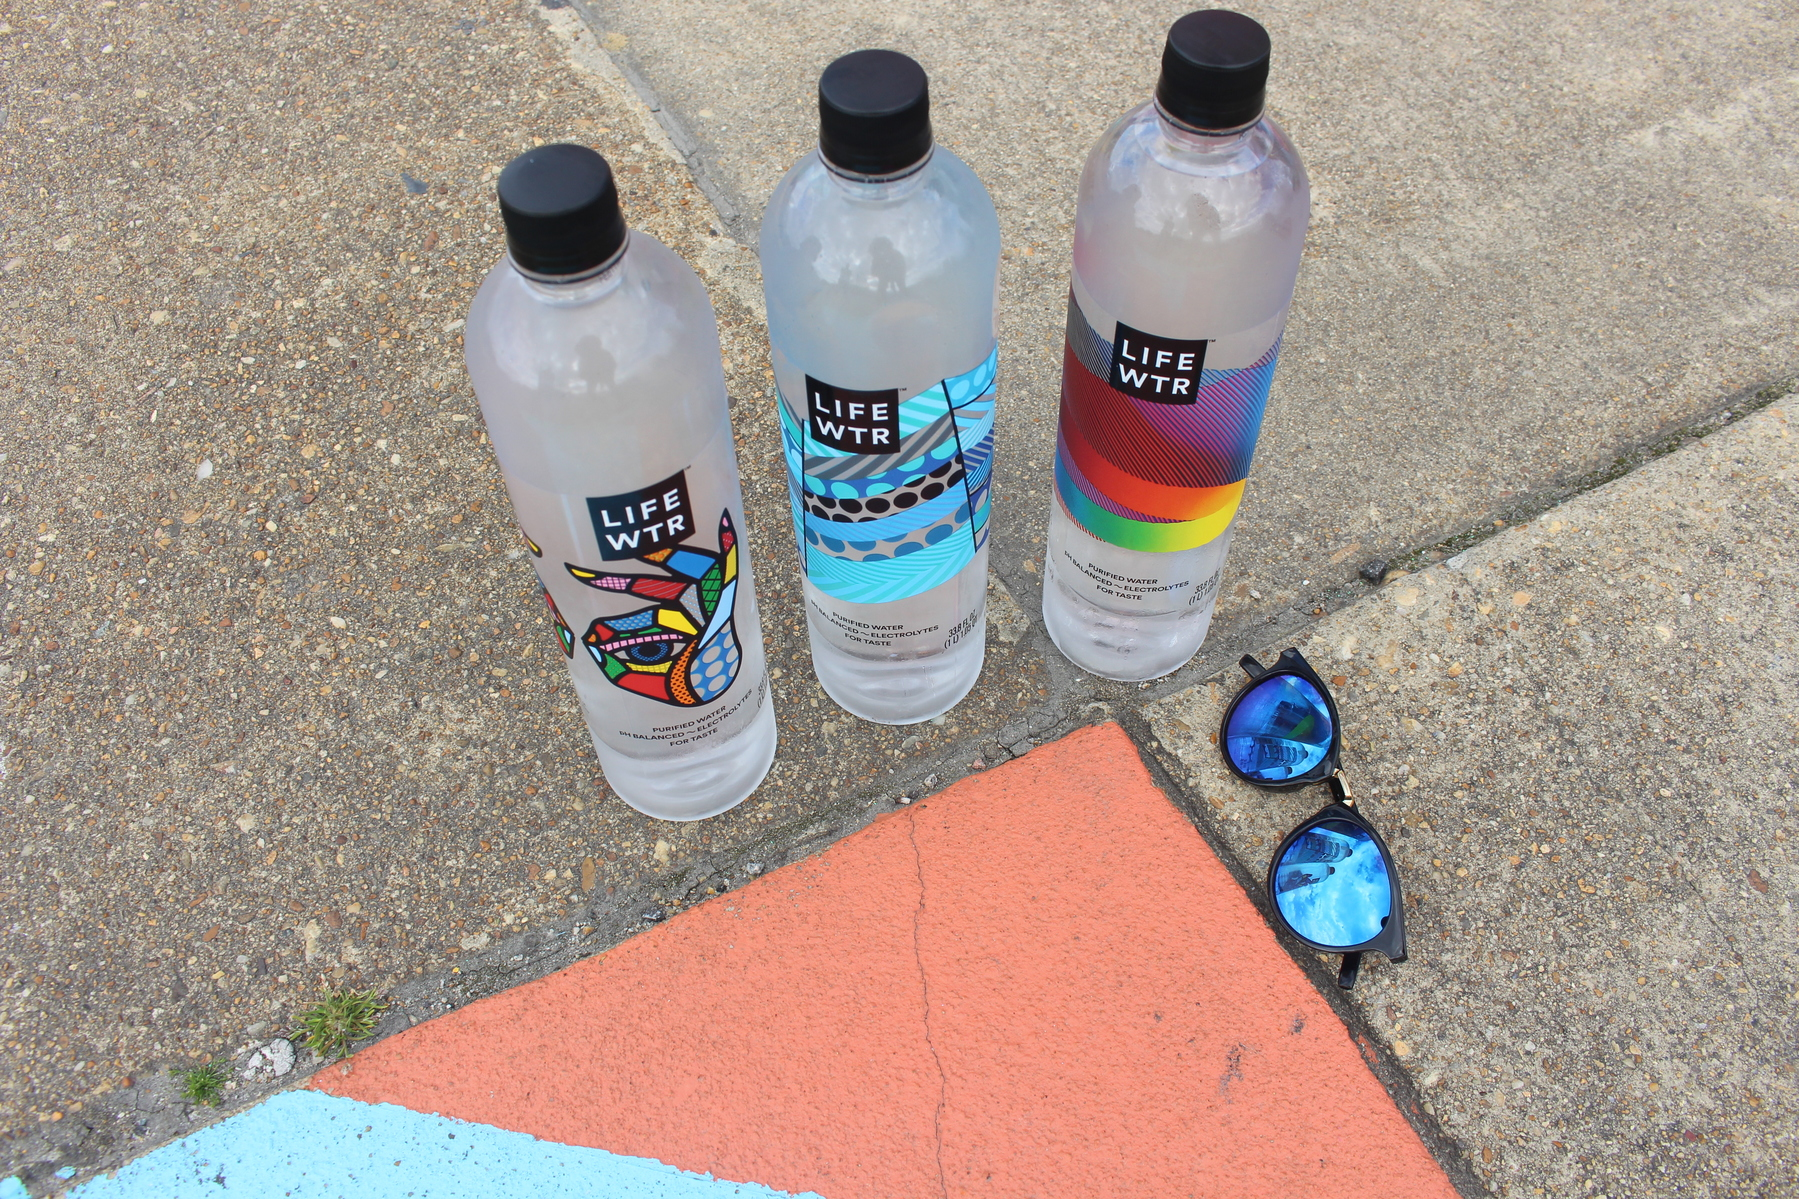 LIFEWTR bottles and sunglasses